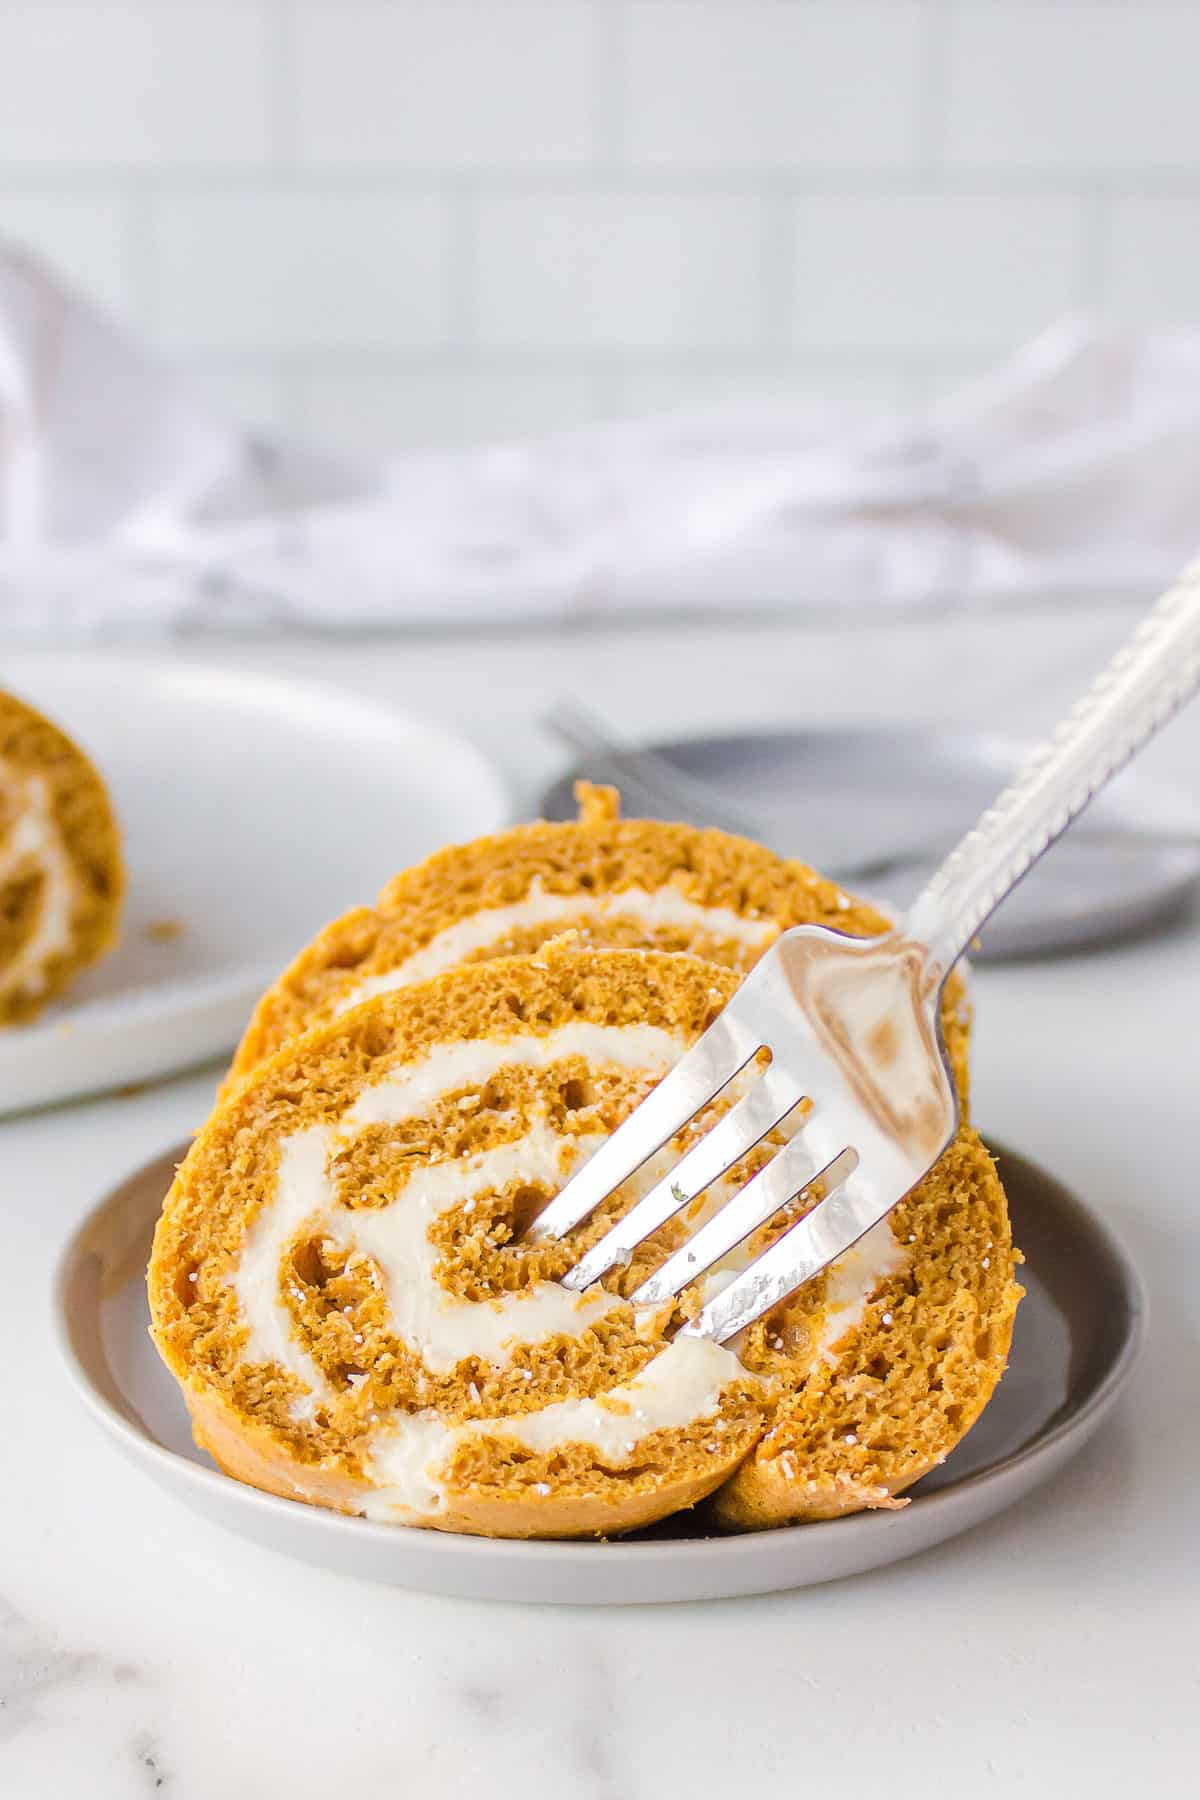 fork in cake mix pumpkin roll with cream cheese frosting served on a taupe plate